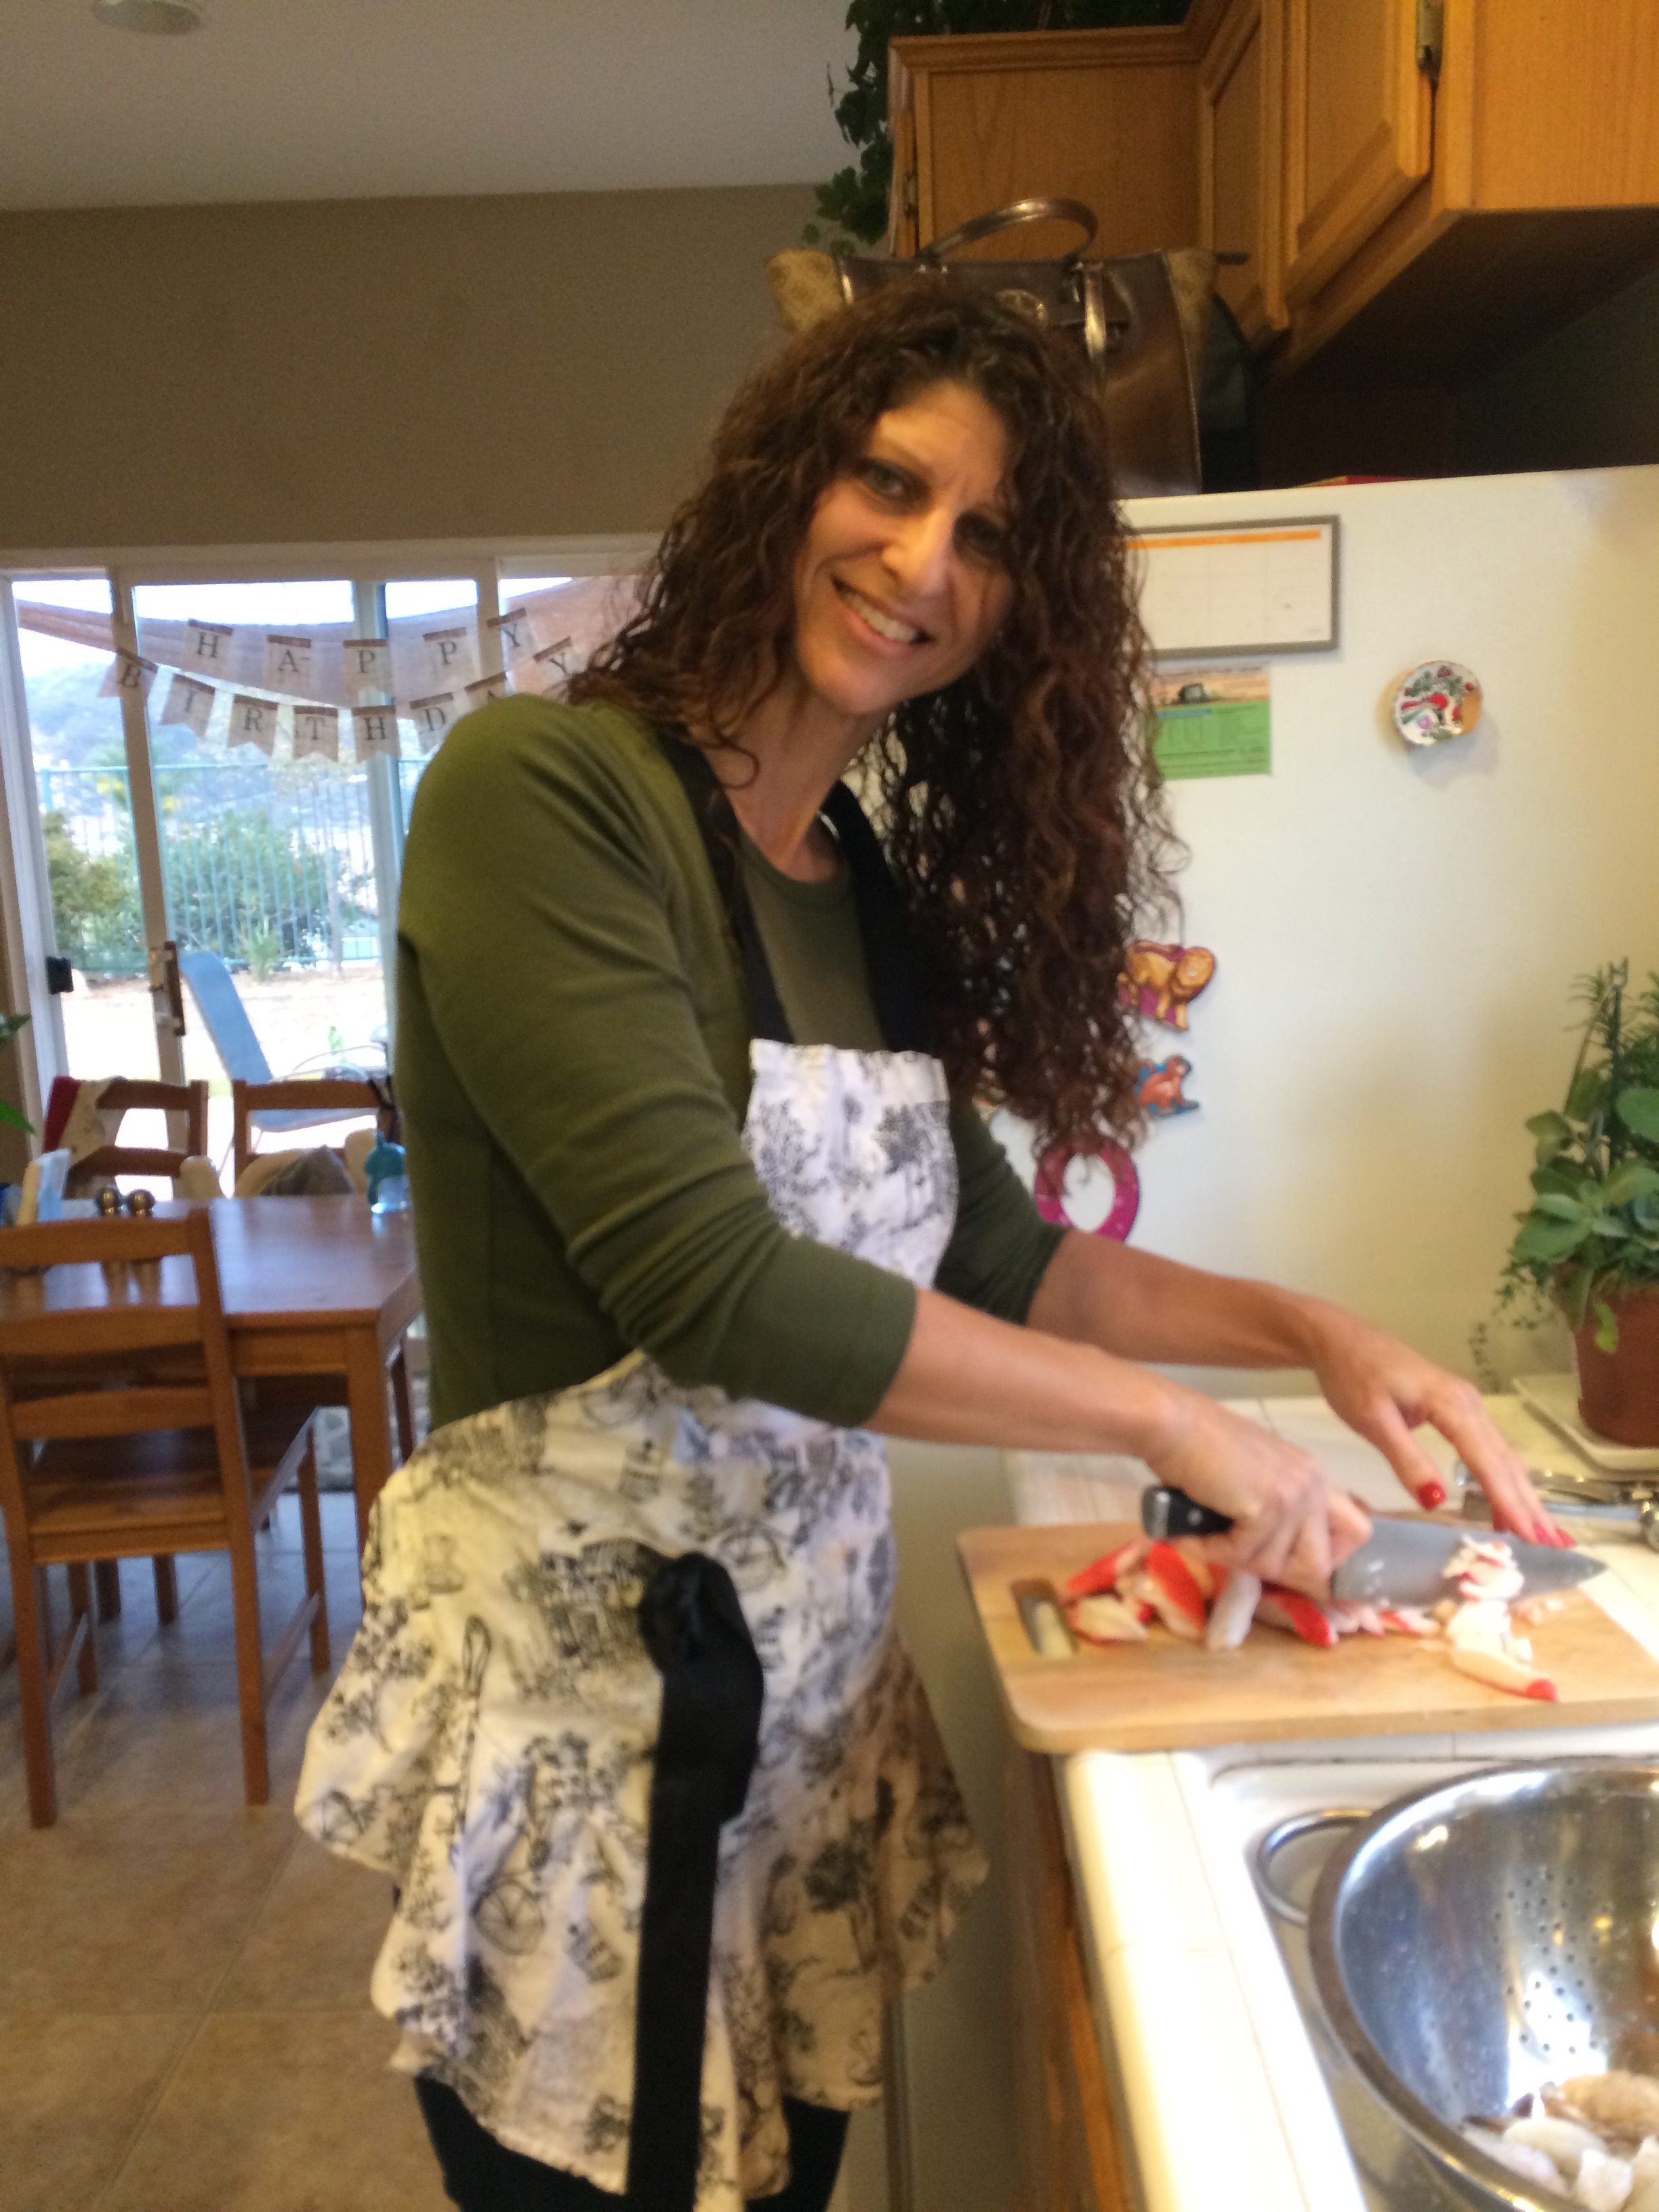 My mom making her famous stuffed shrimp on Thanksgiving Eve